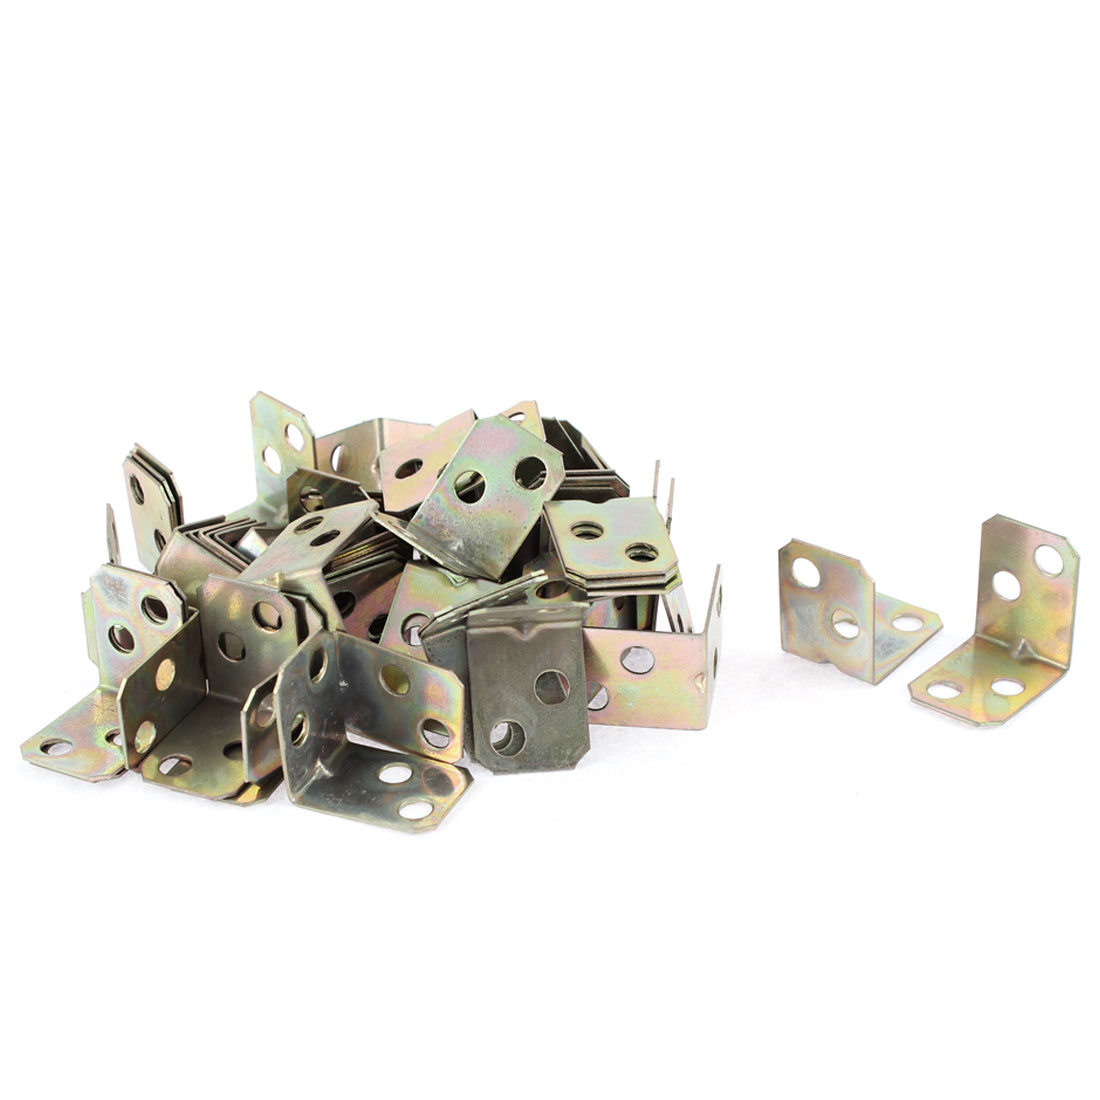 L Shape Corner Brace Joint Right Angle Bracket Bronze Tone 16x16x20mm 60pcs